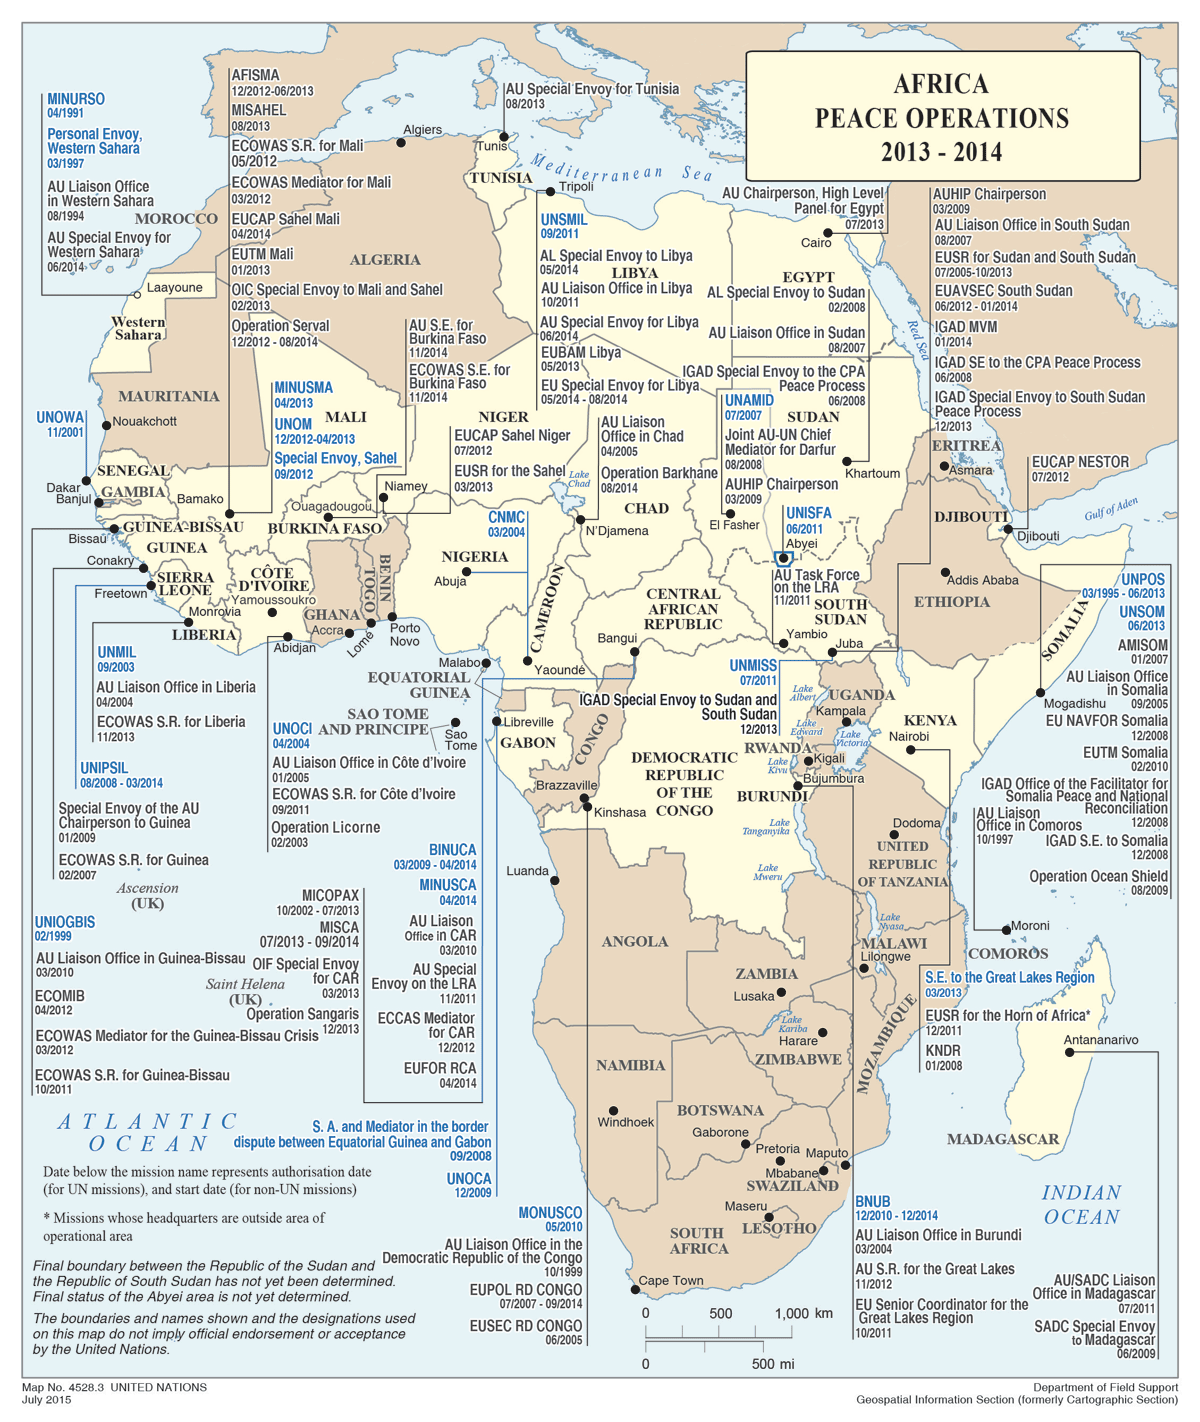 Africa global peace operations review png version of the map gpormapafricadec20161200x1422 gumiabroncs Image collections